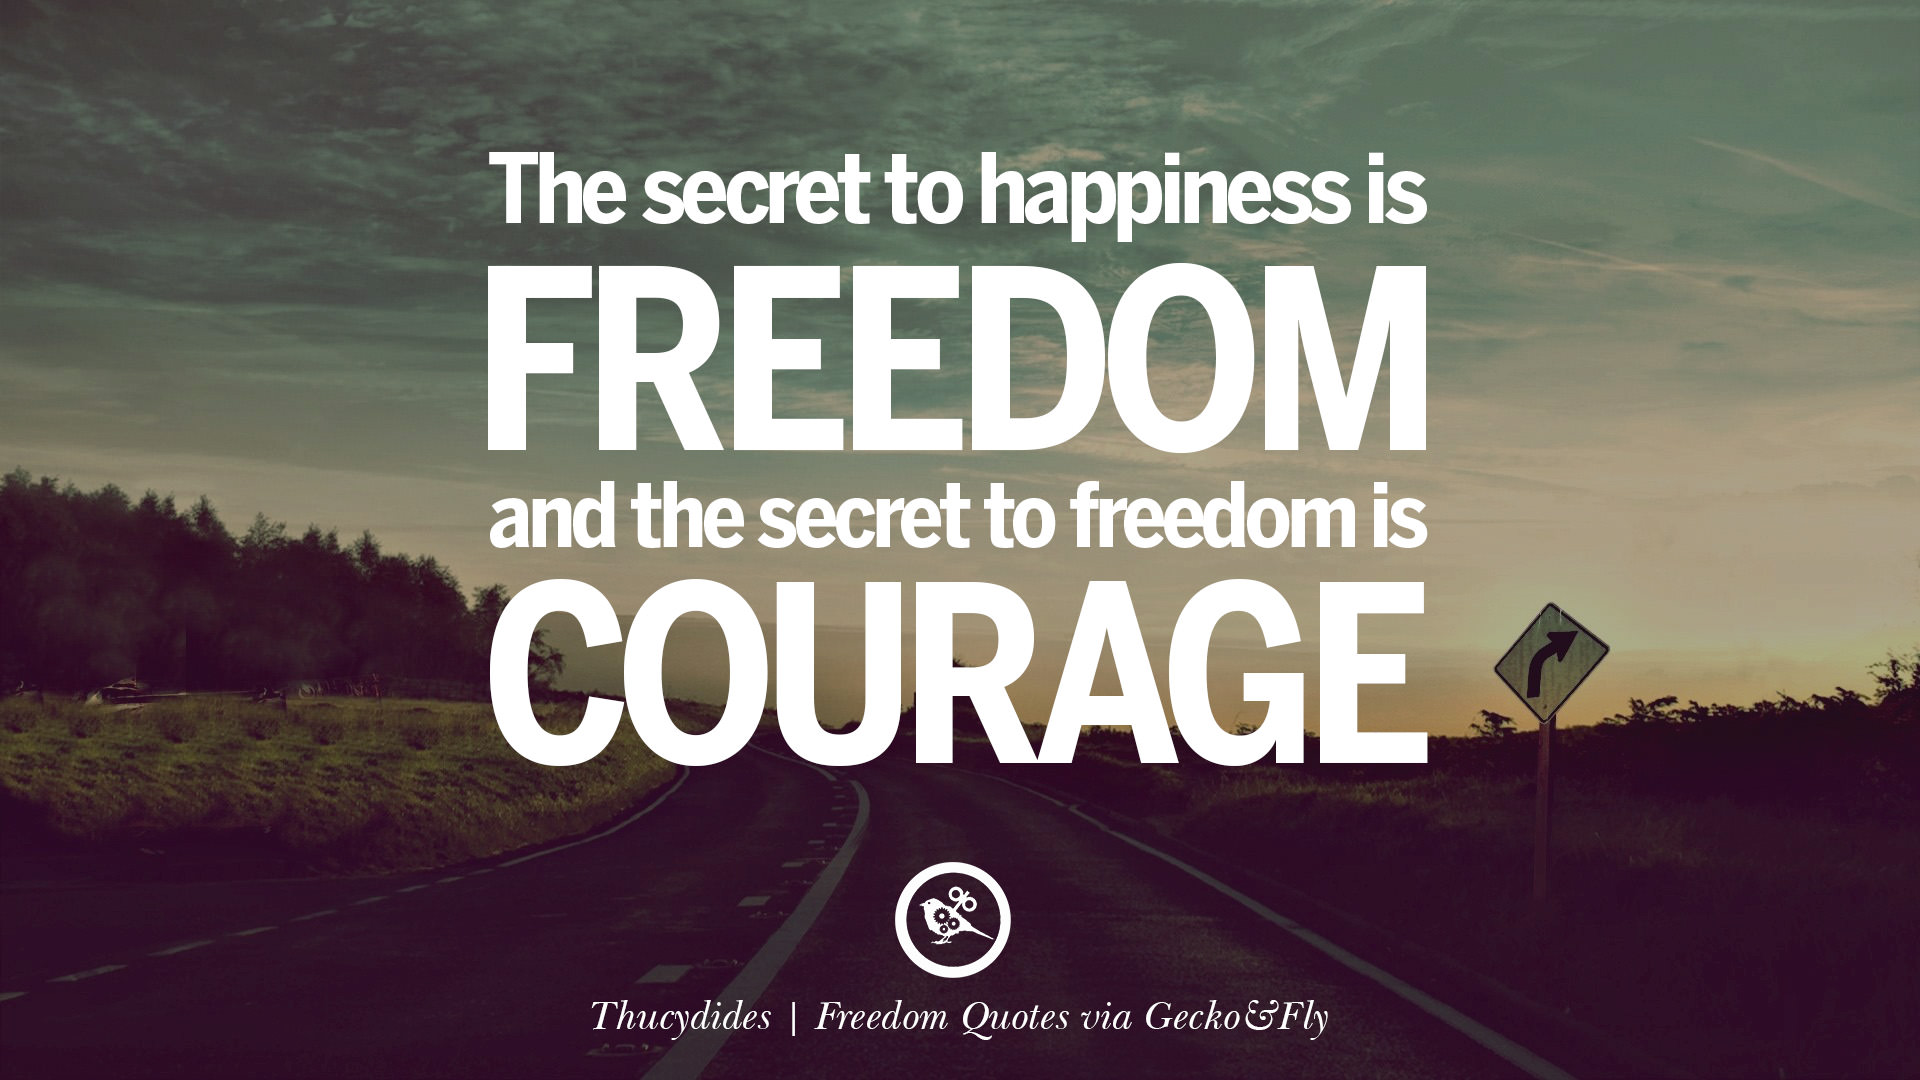 The Secret Quotes 30 Inspiring Quotes About Freedom And Liberty  Geckoandfly 2018